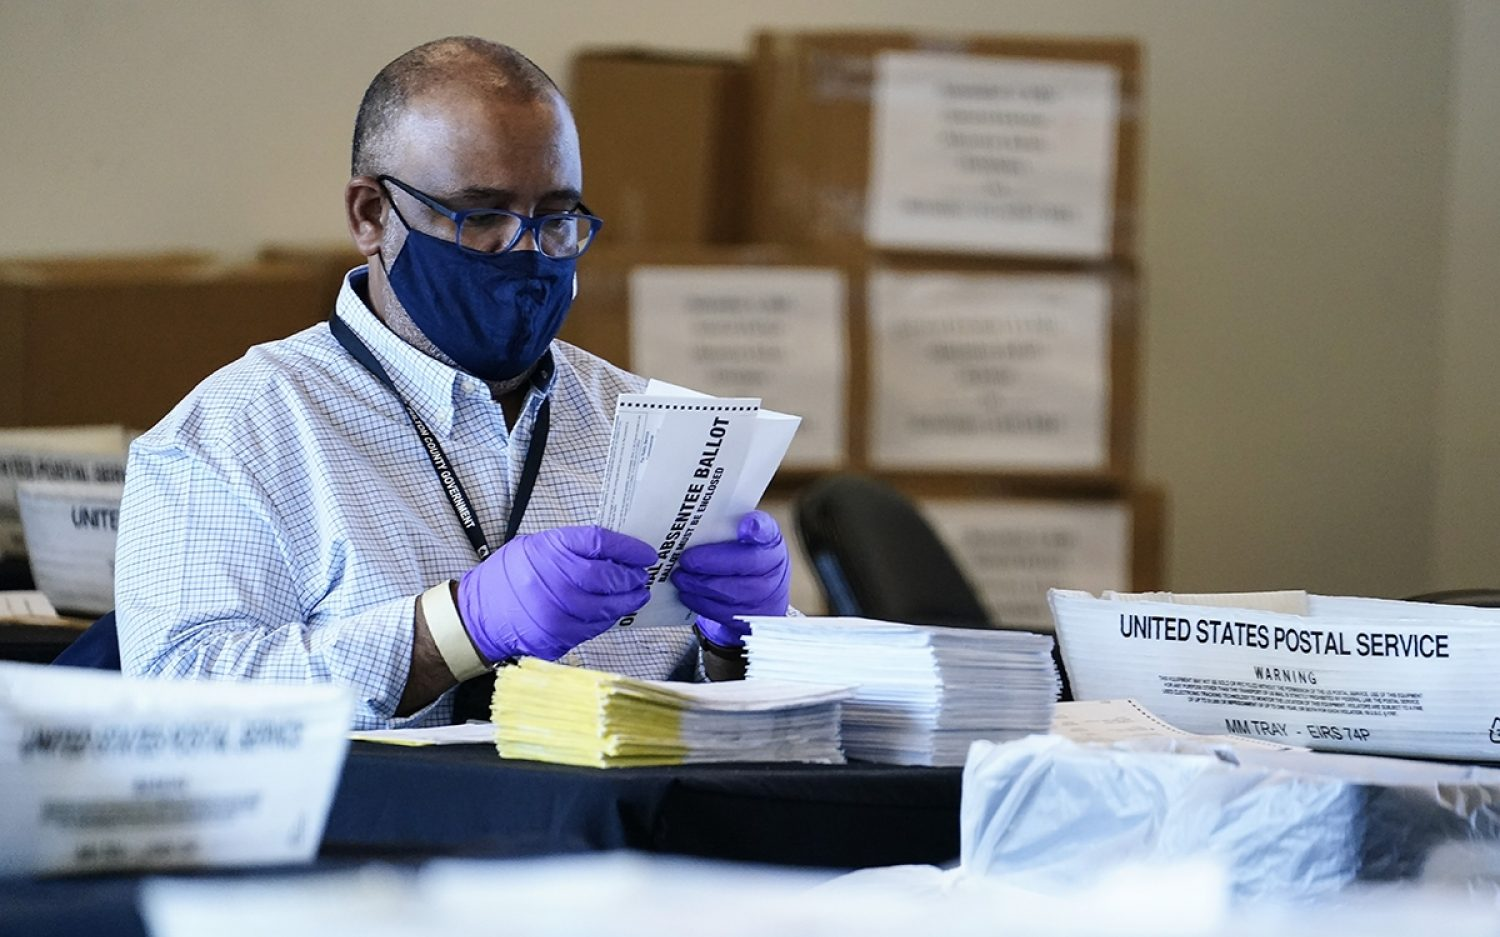 Tidying up voter rolls would prevent election fraud